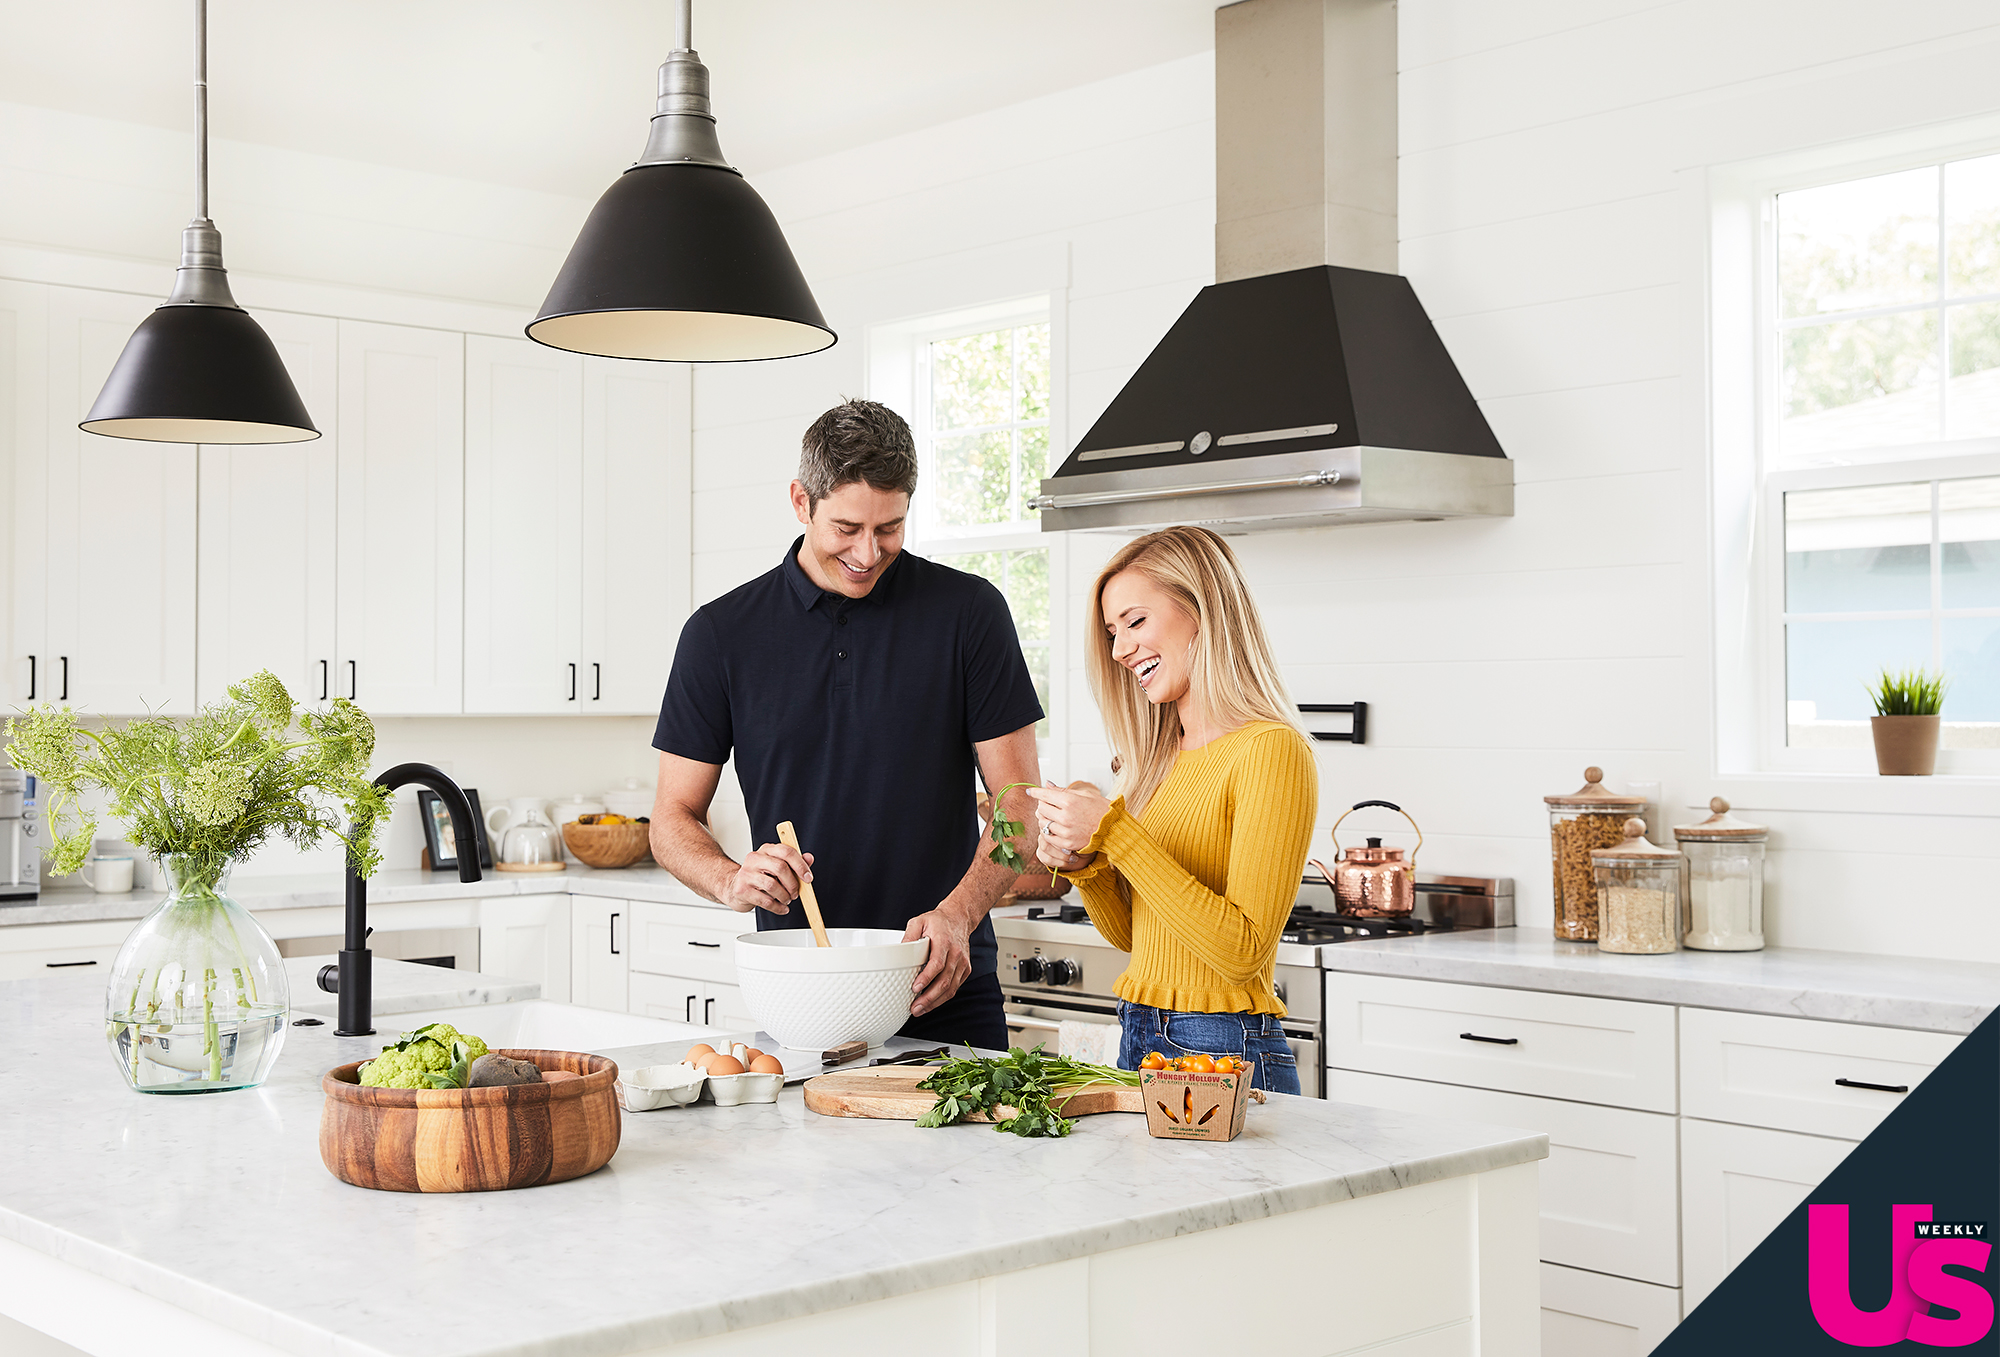 """Arie Luyendyk Jr Lauren Burnham New Home - """"Some of our must-have cooking essentials would have to be a good set of mixing bowls, quality pots and pans and an overwhelming amount of wooden spoons and spatulas,"""" the realtor tells Us . """"It's so open."""""""